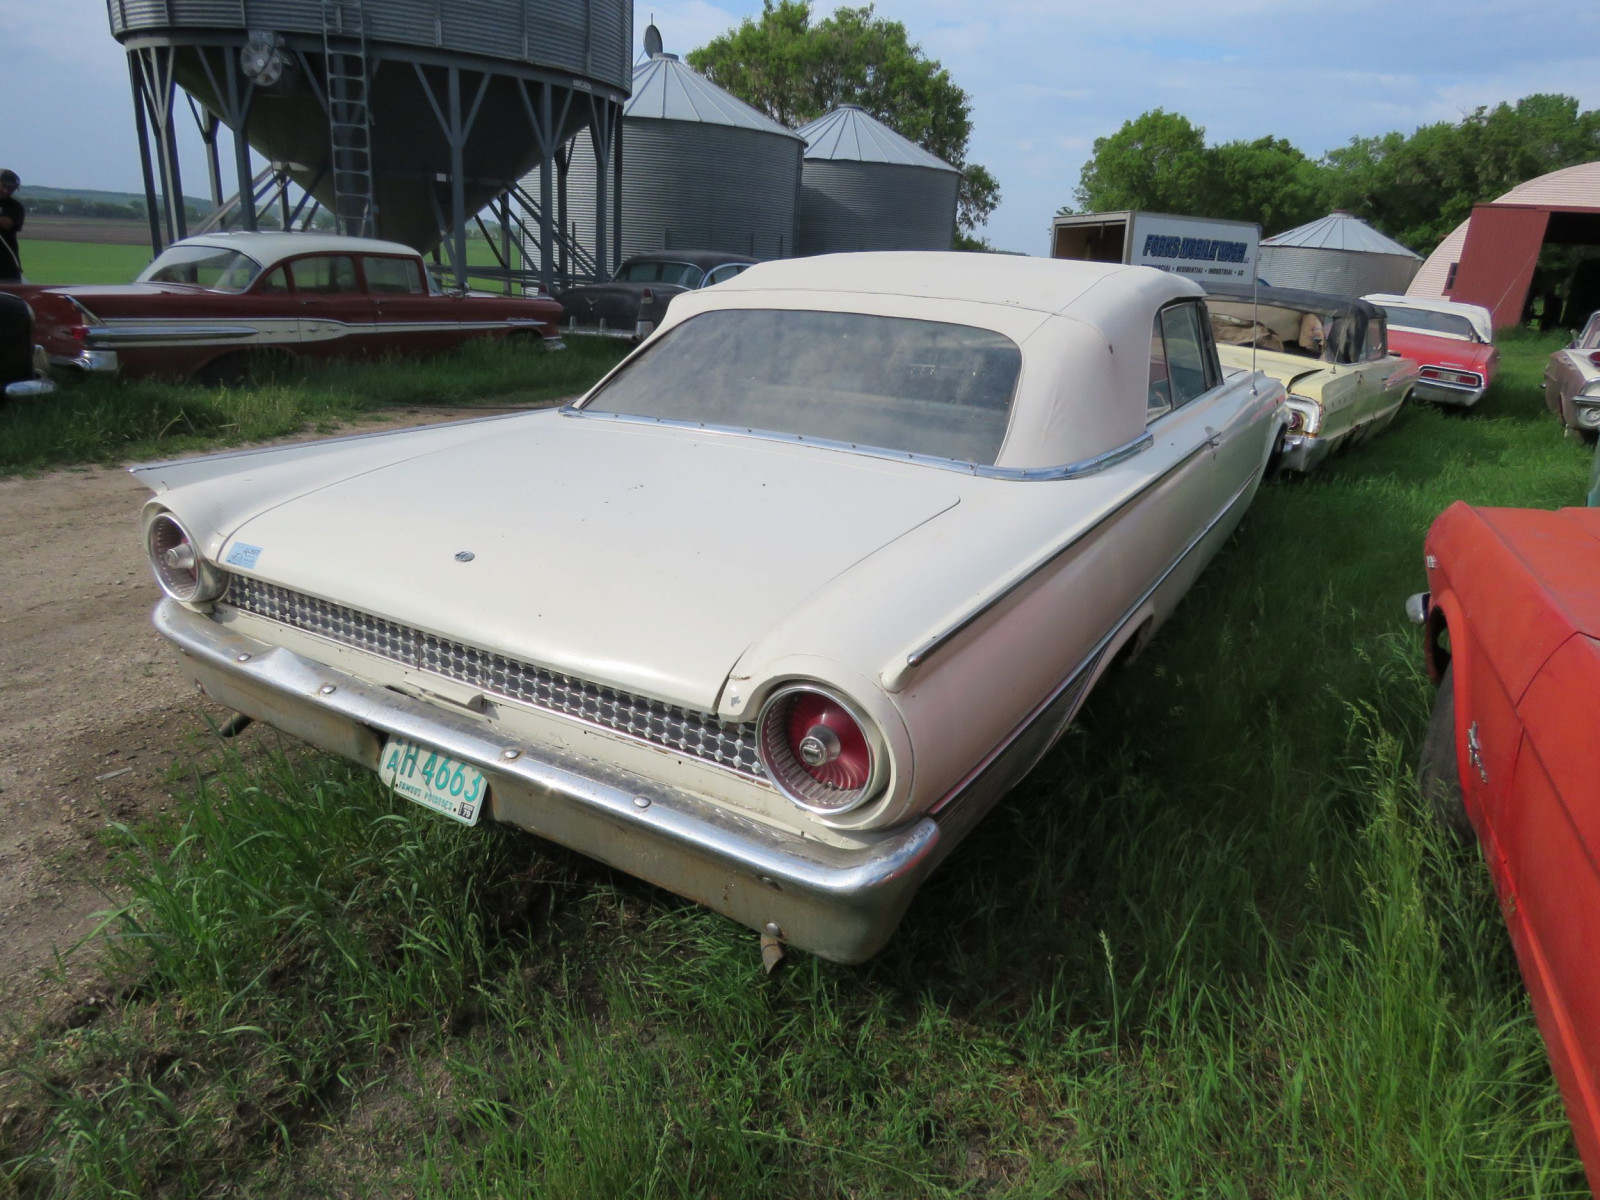 1961 Ford Sunliner Convertible 1G55W143311 - Image 5